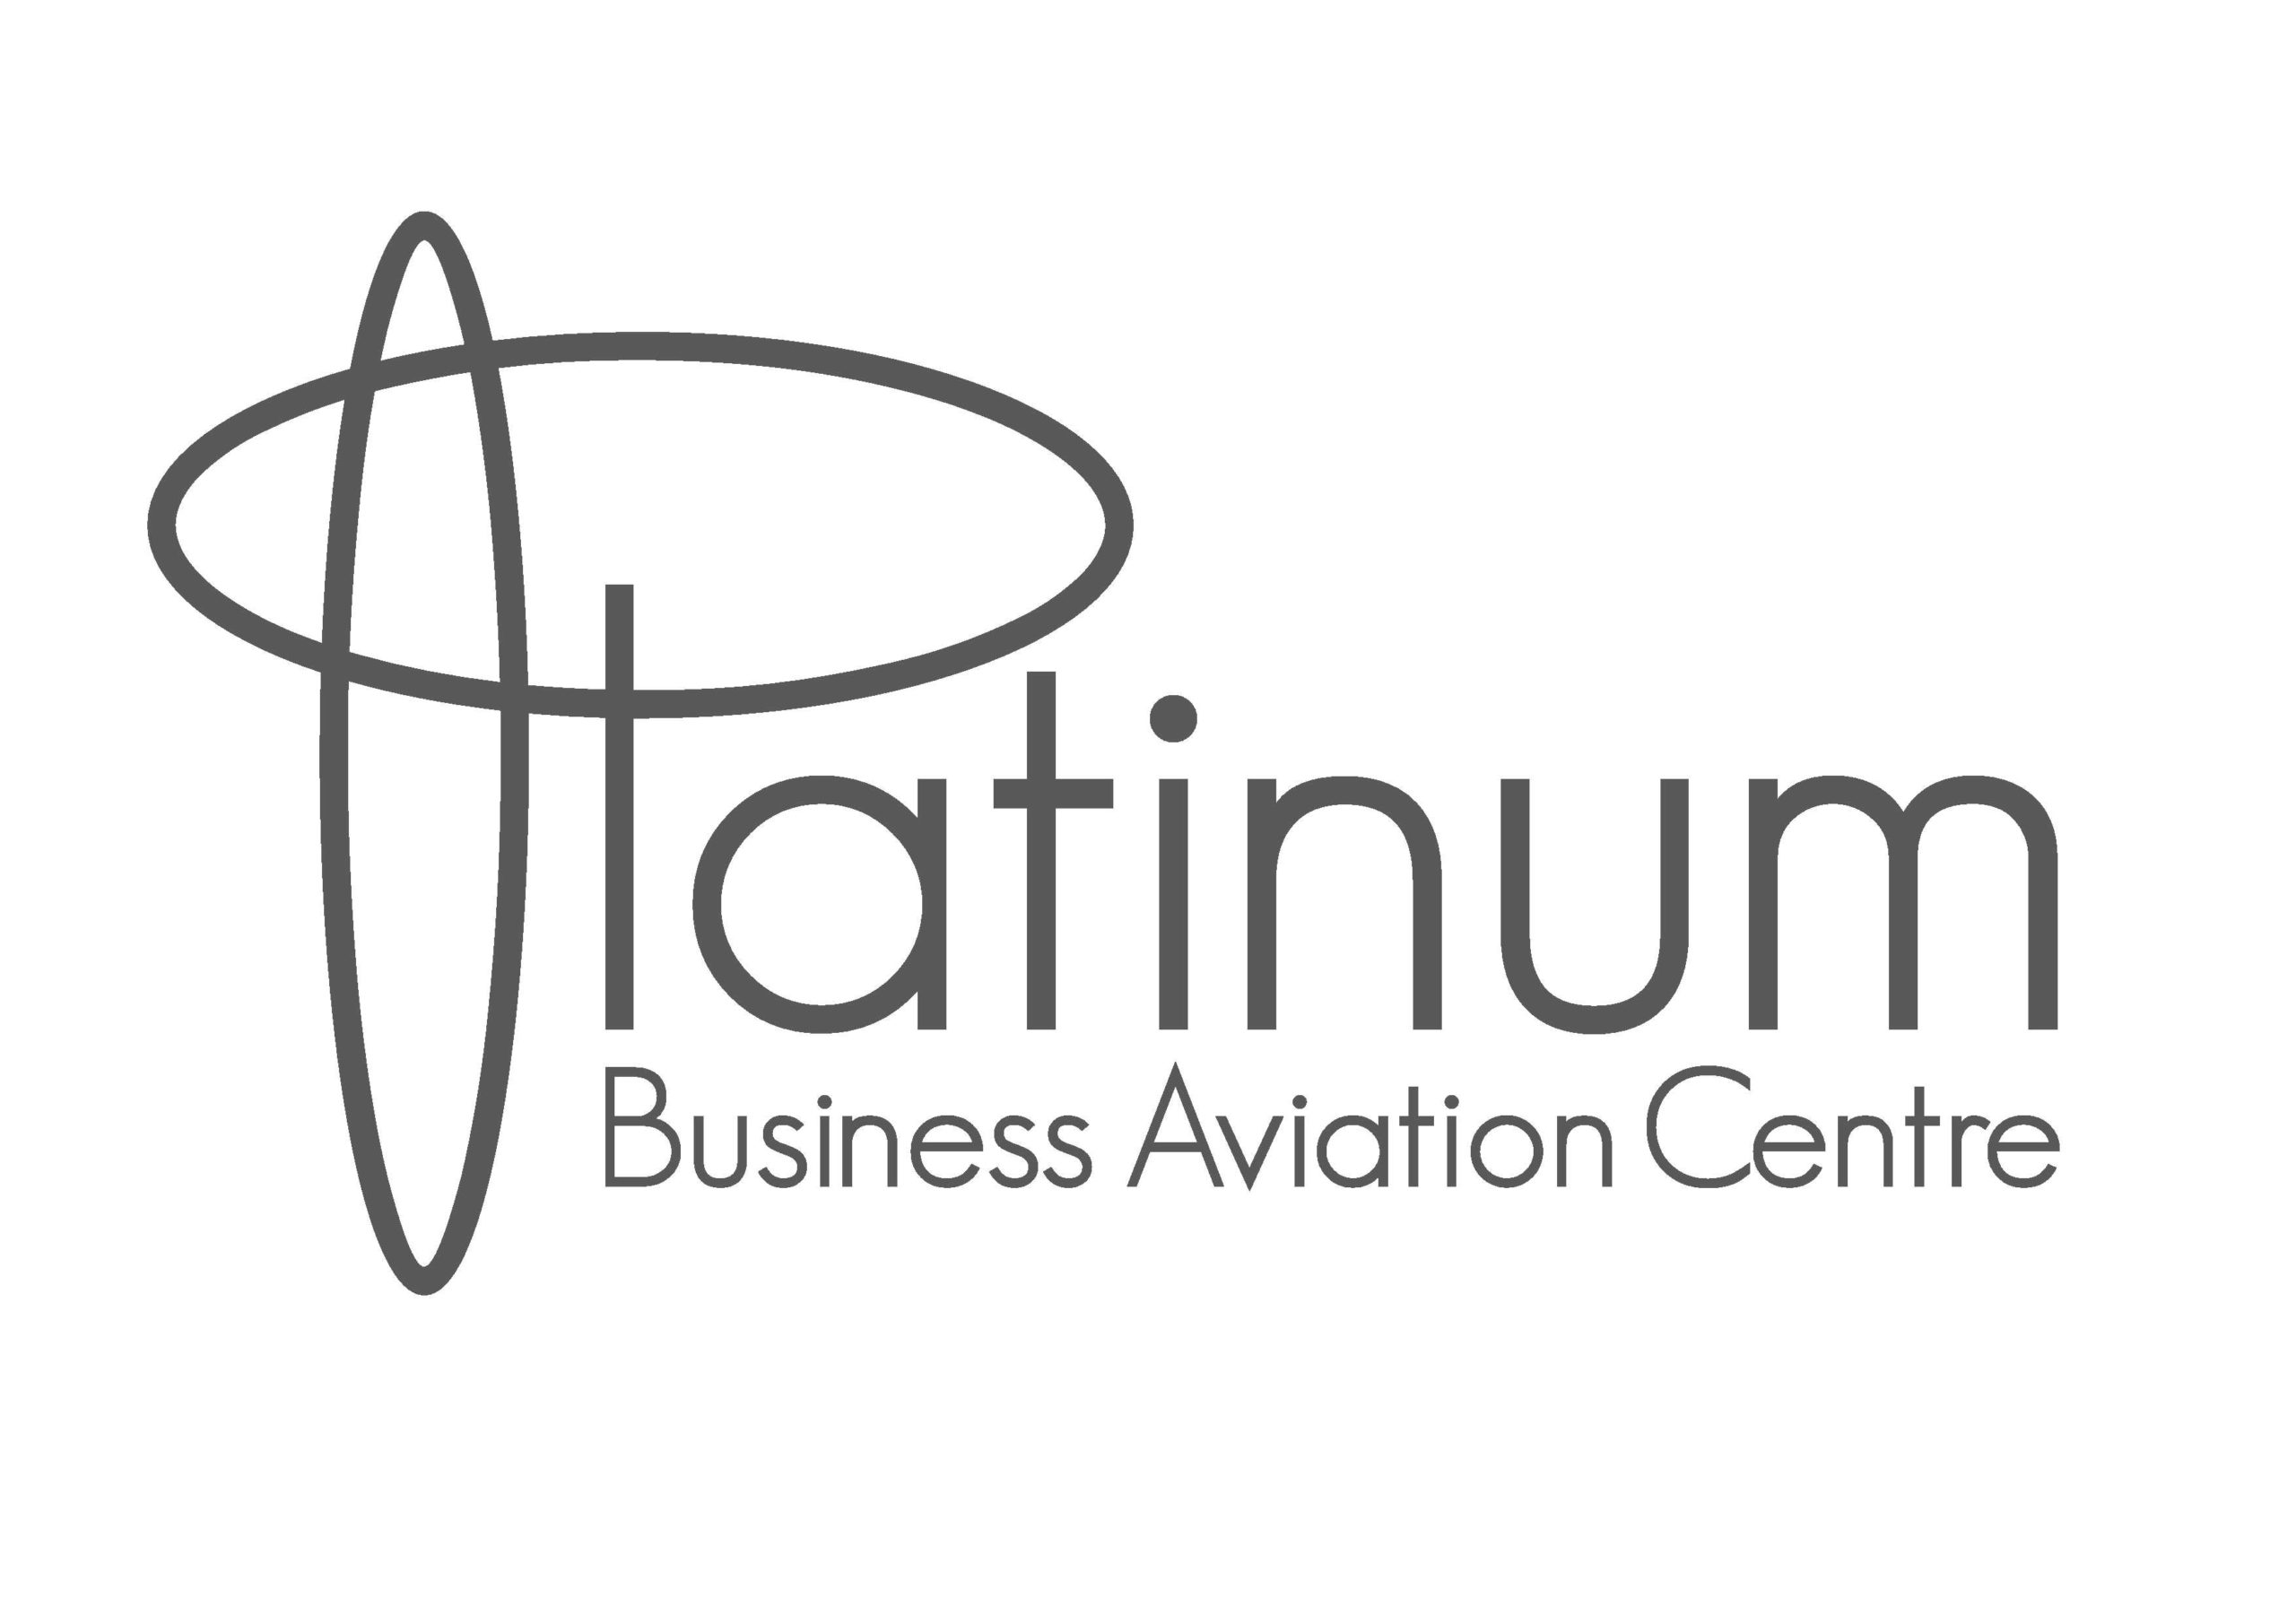 Platinum Business Aviation Centre